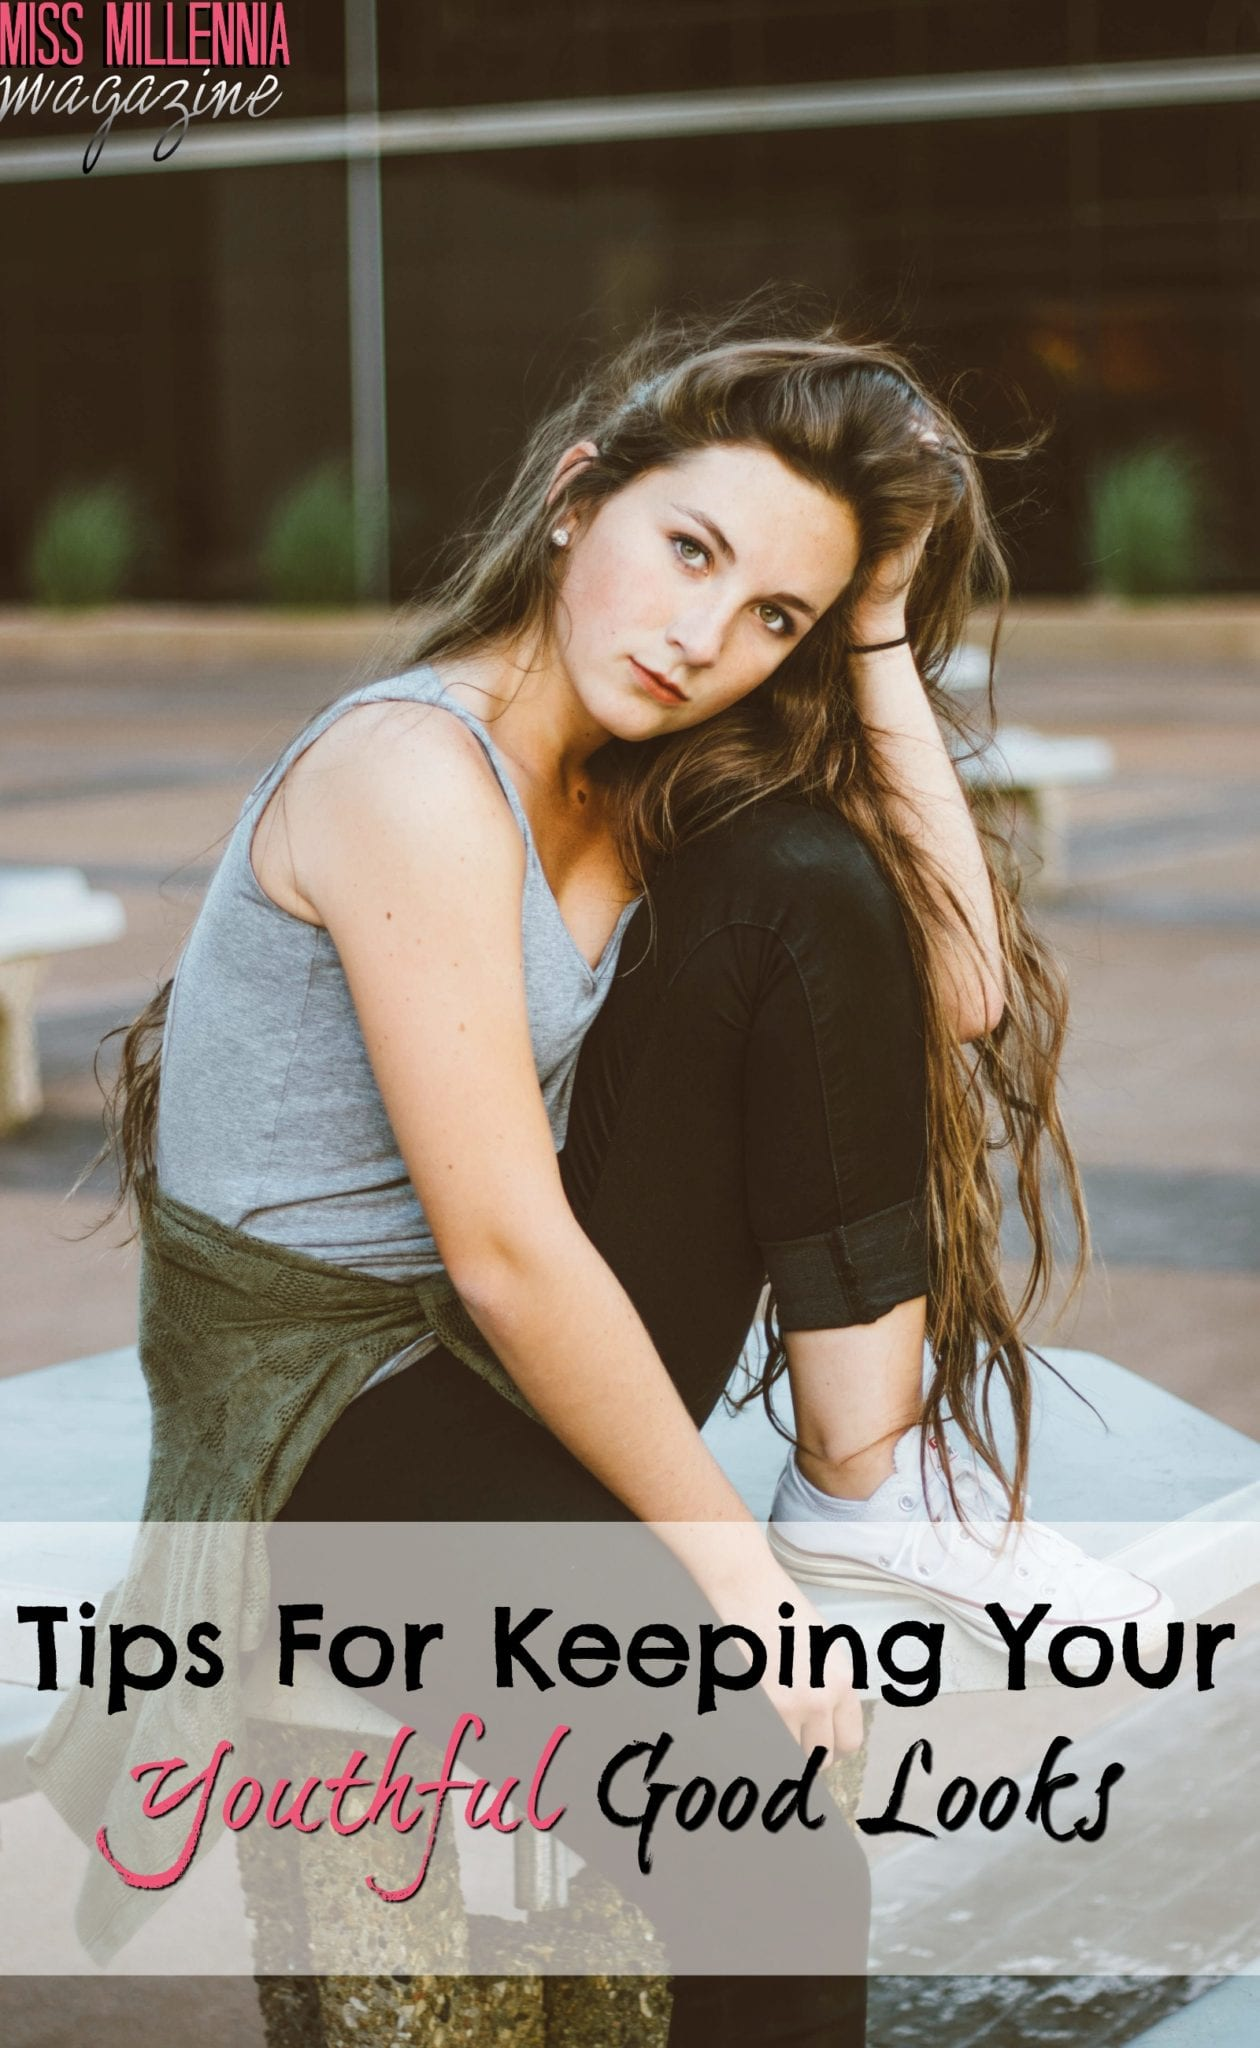 tips-for-keeping-your-youthful-good-looks